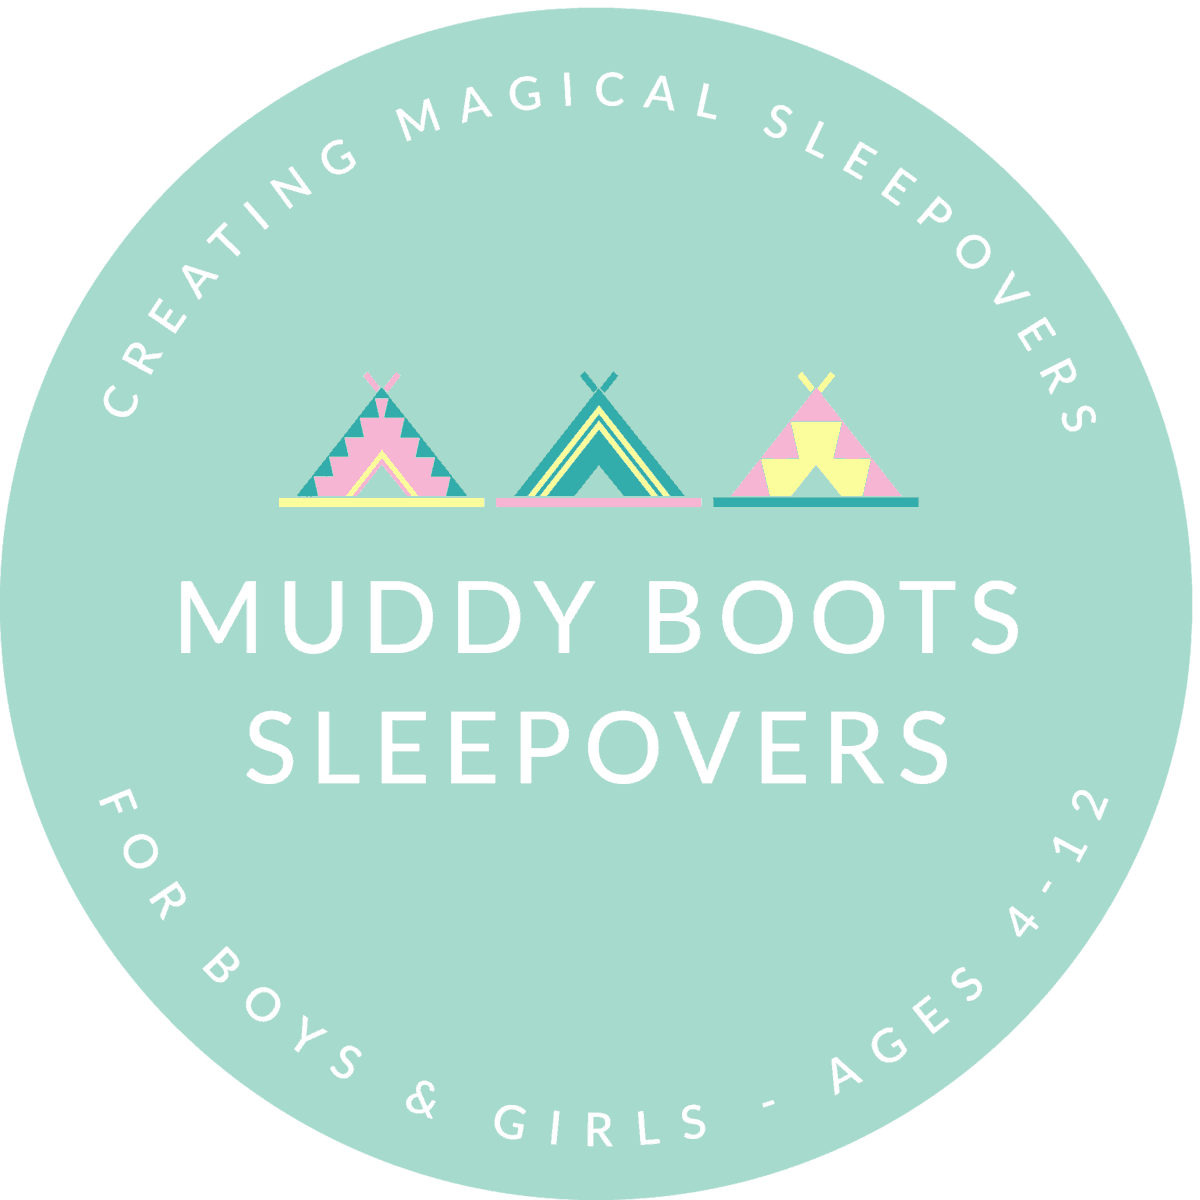 Muddy Boots sleepover-CIRCLE-LOGO-not london